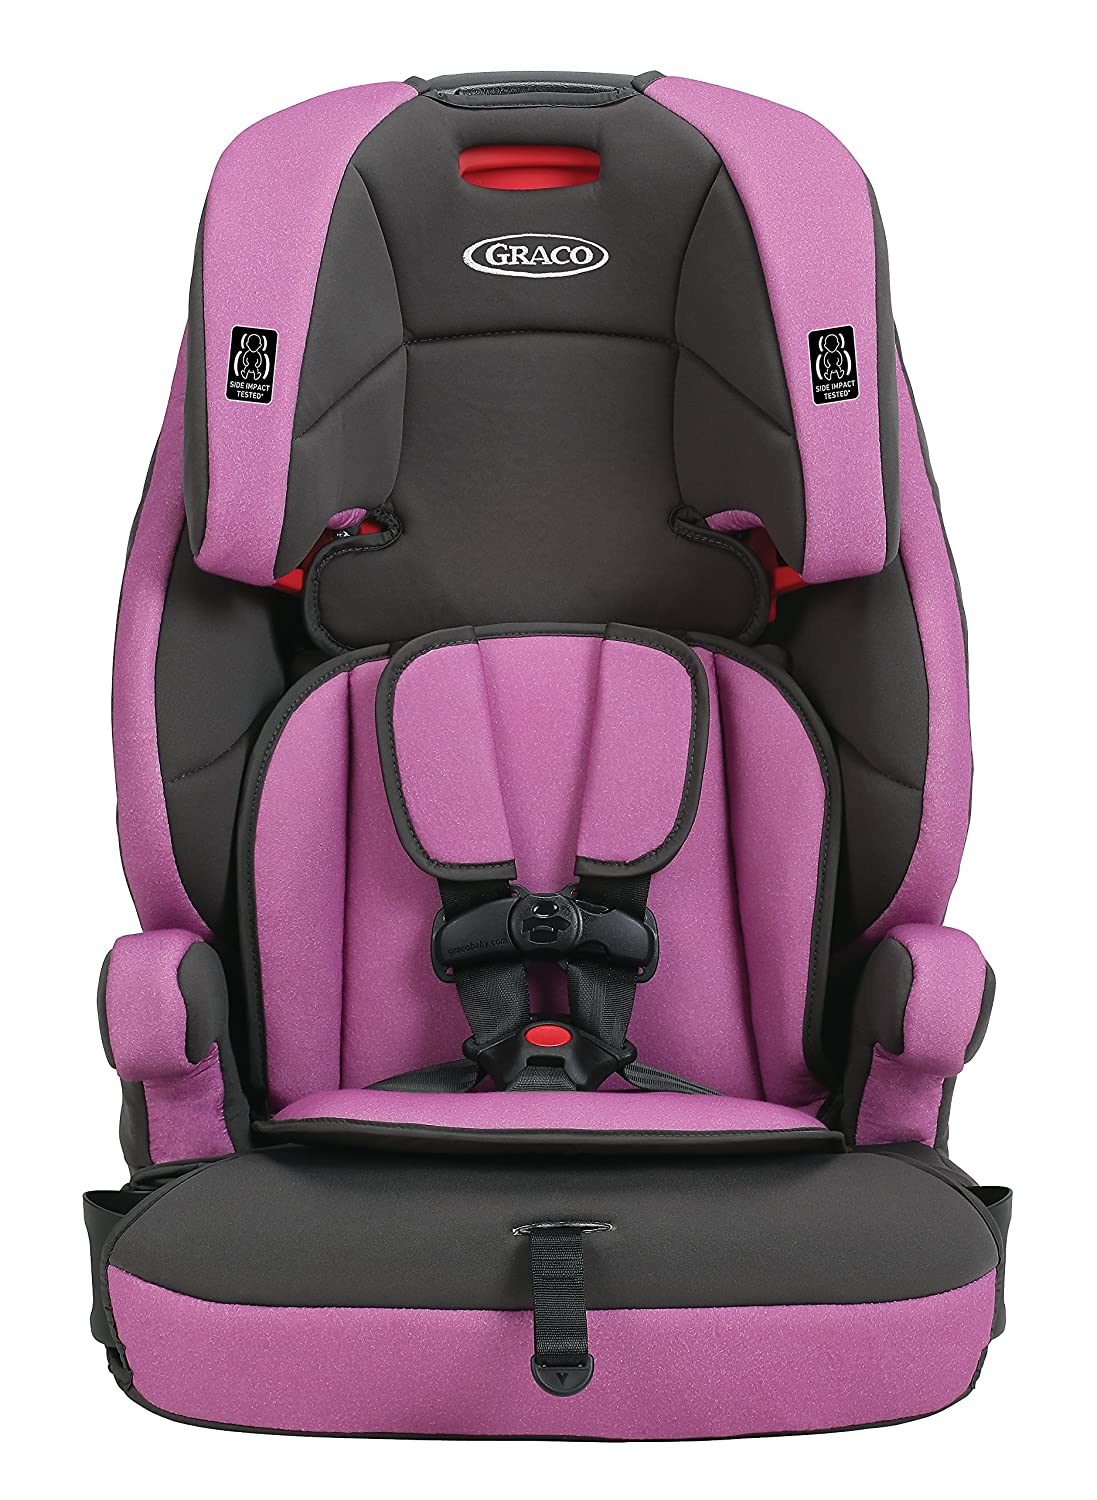 Graco Tranzitions 3 In 1 Harness Booster Seat b Top Pick for booster seats with 5 Point Harness